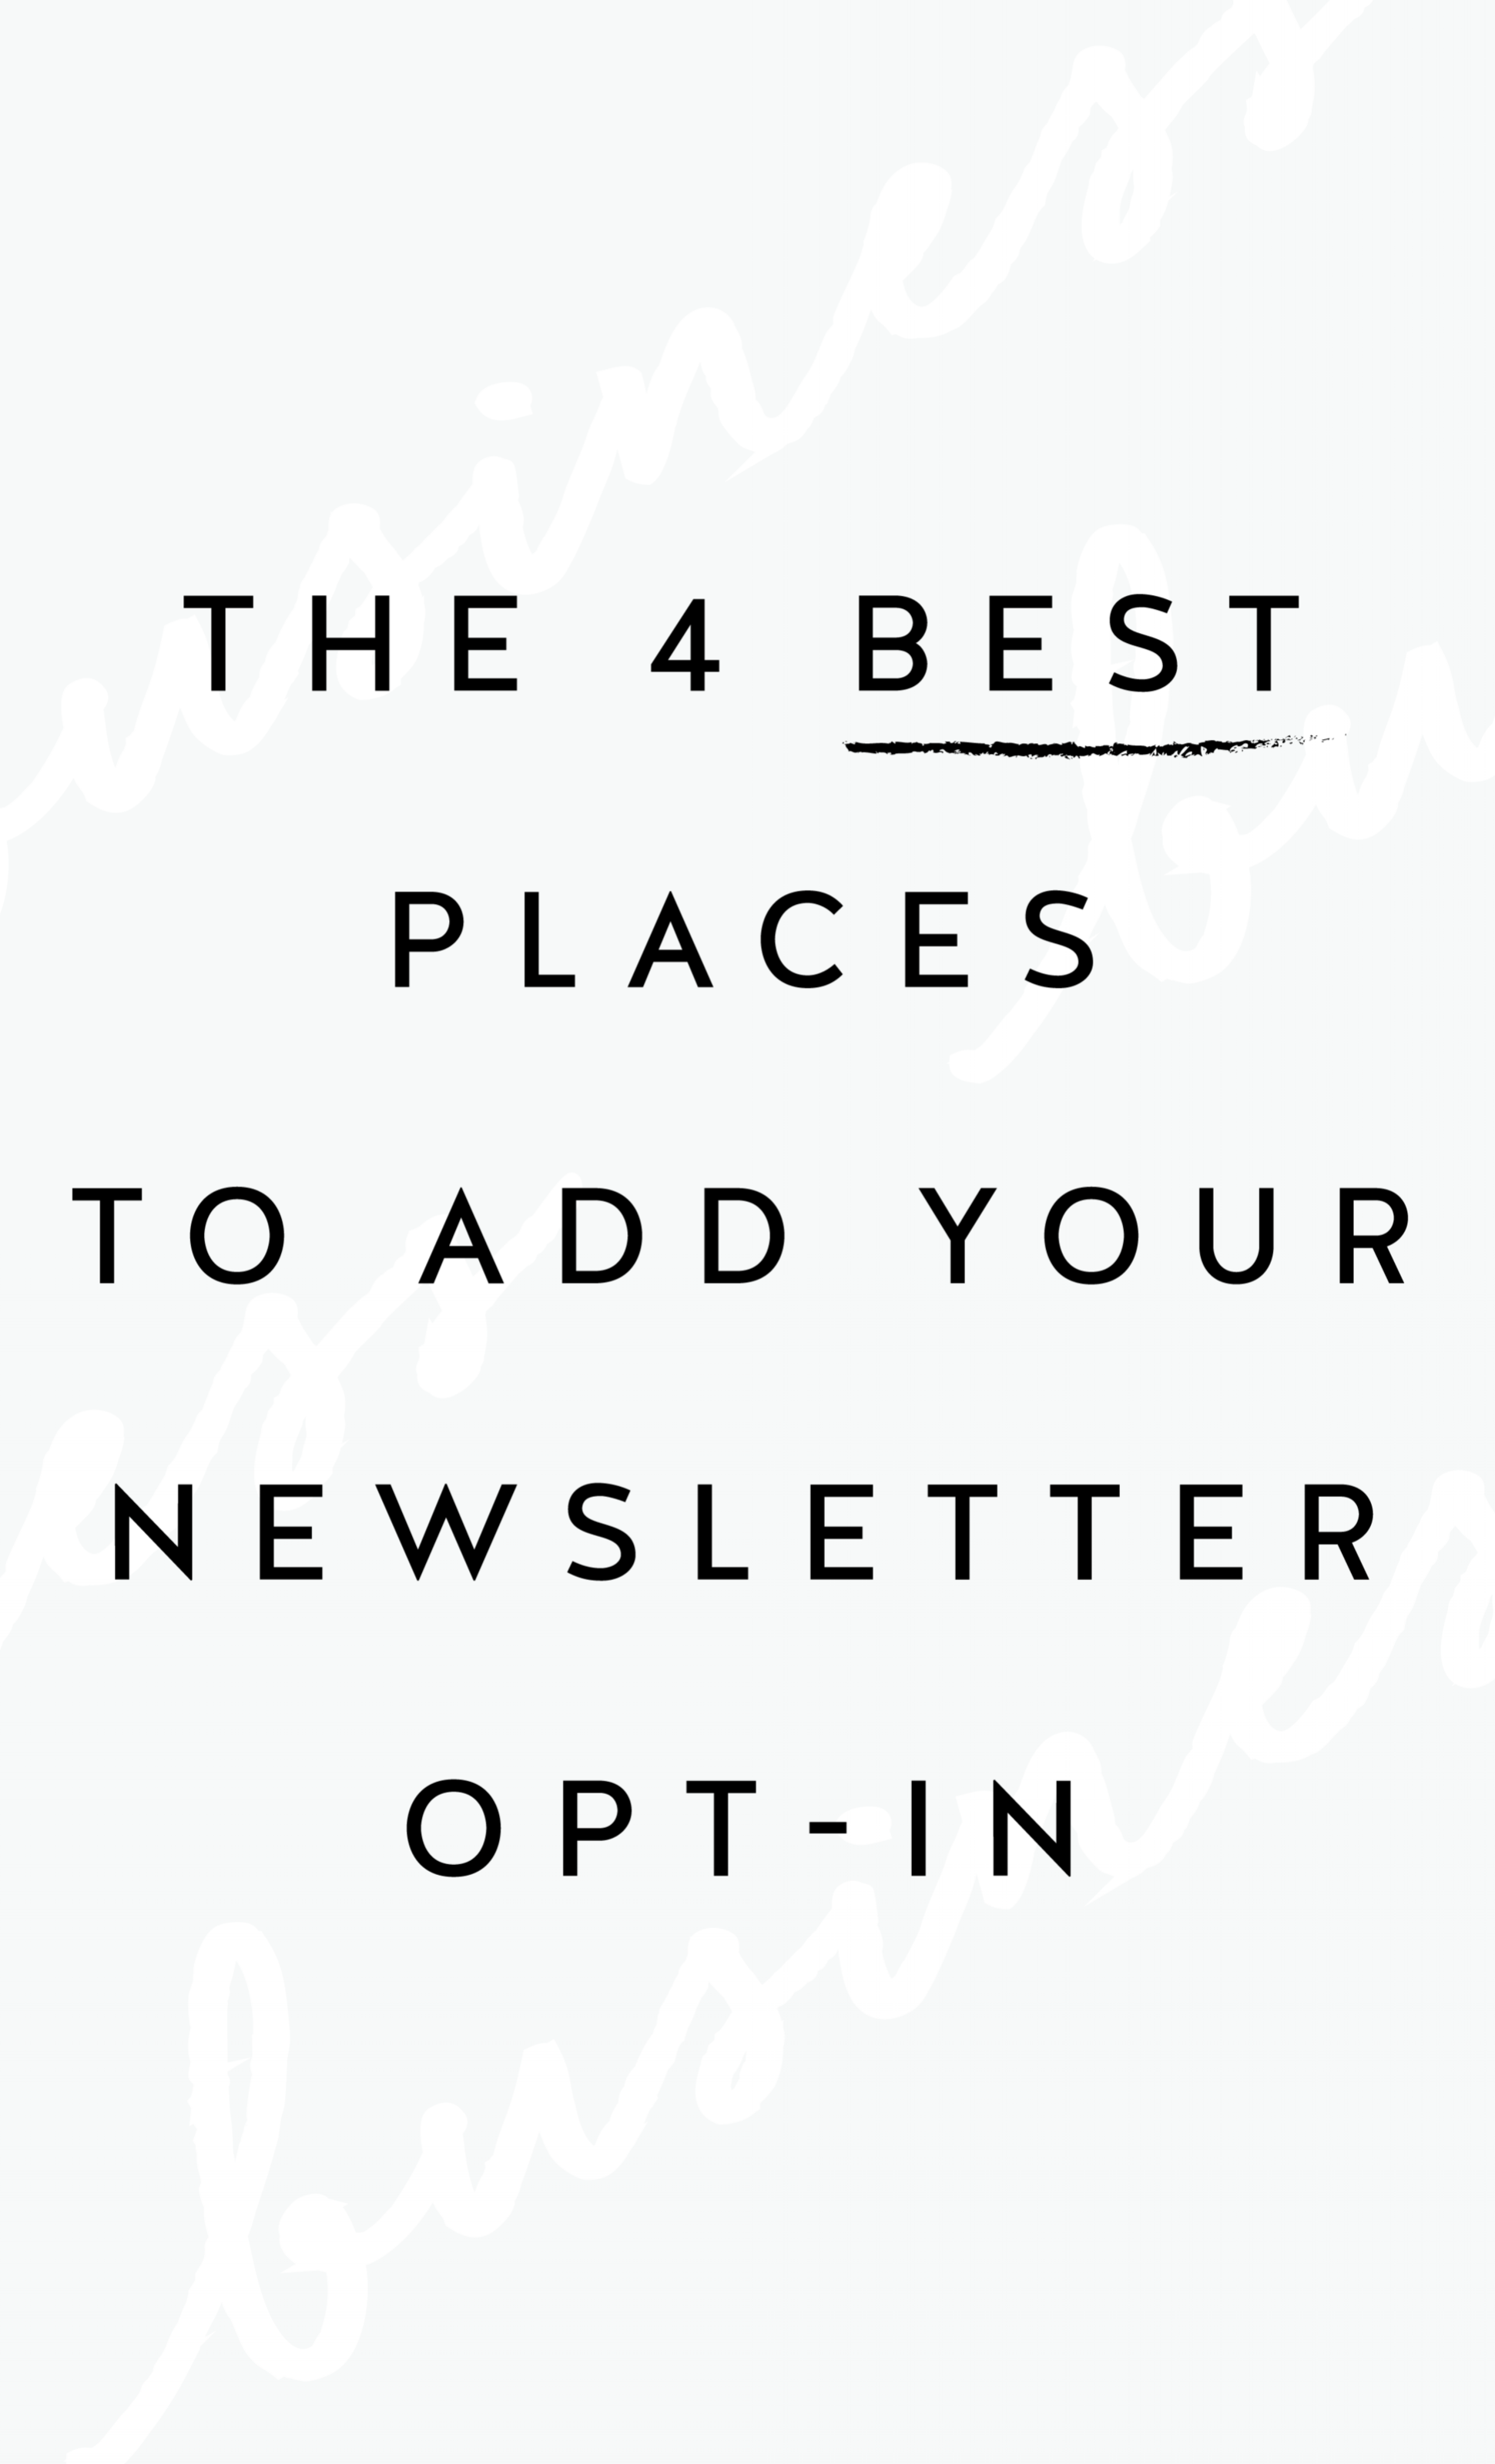 The 4 best places to add your newsletter opt-in-23.png